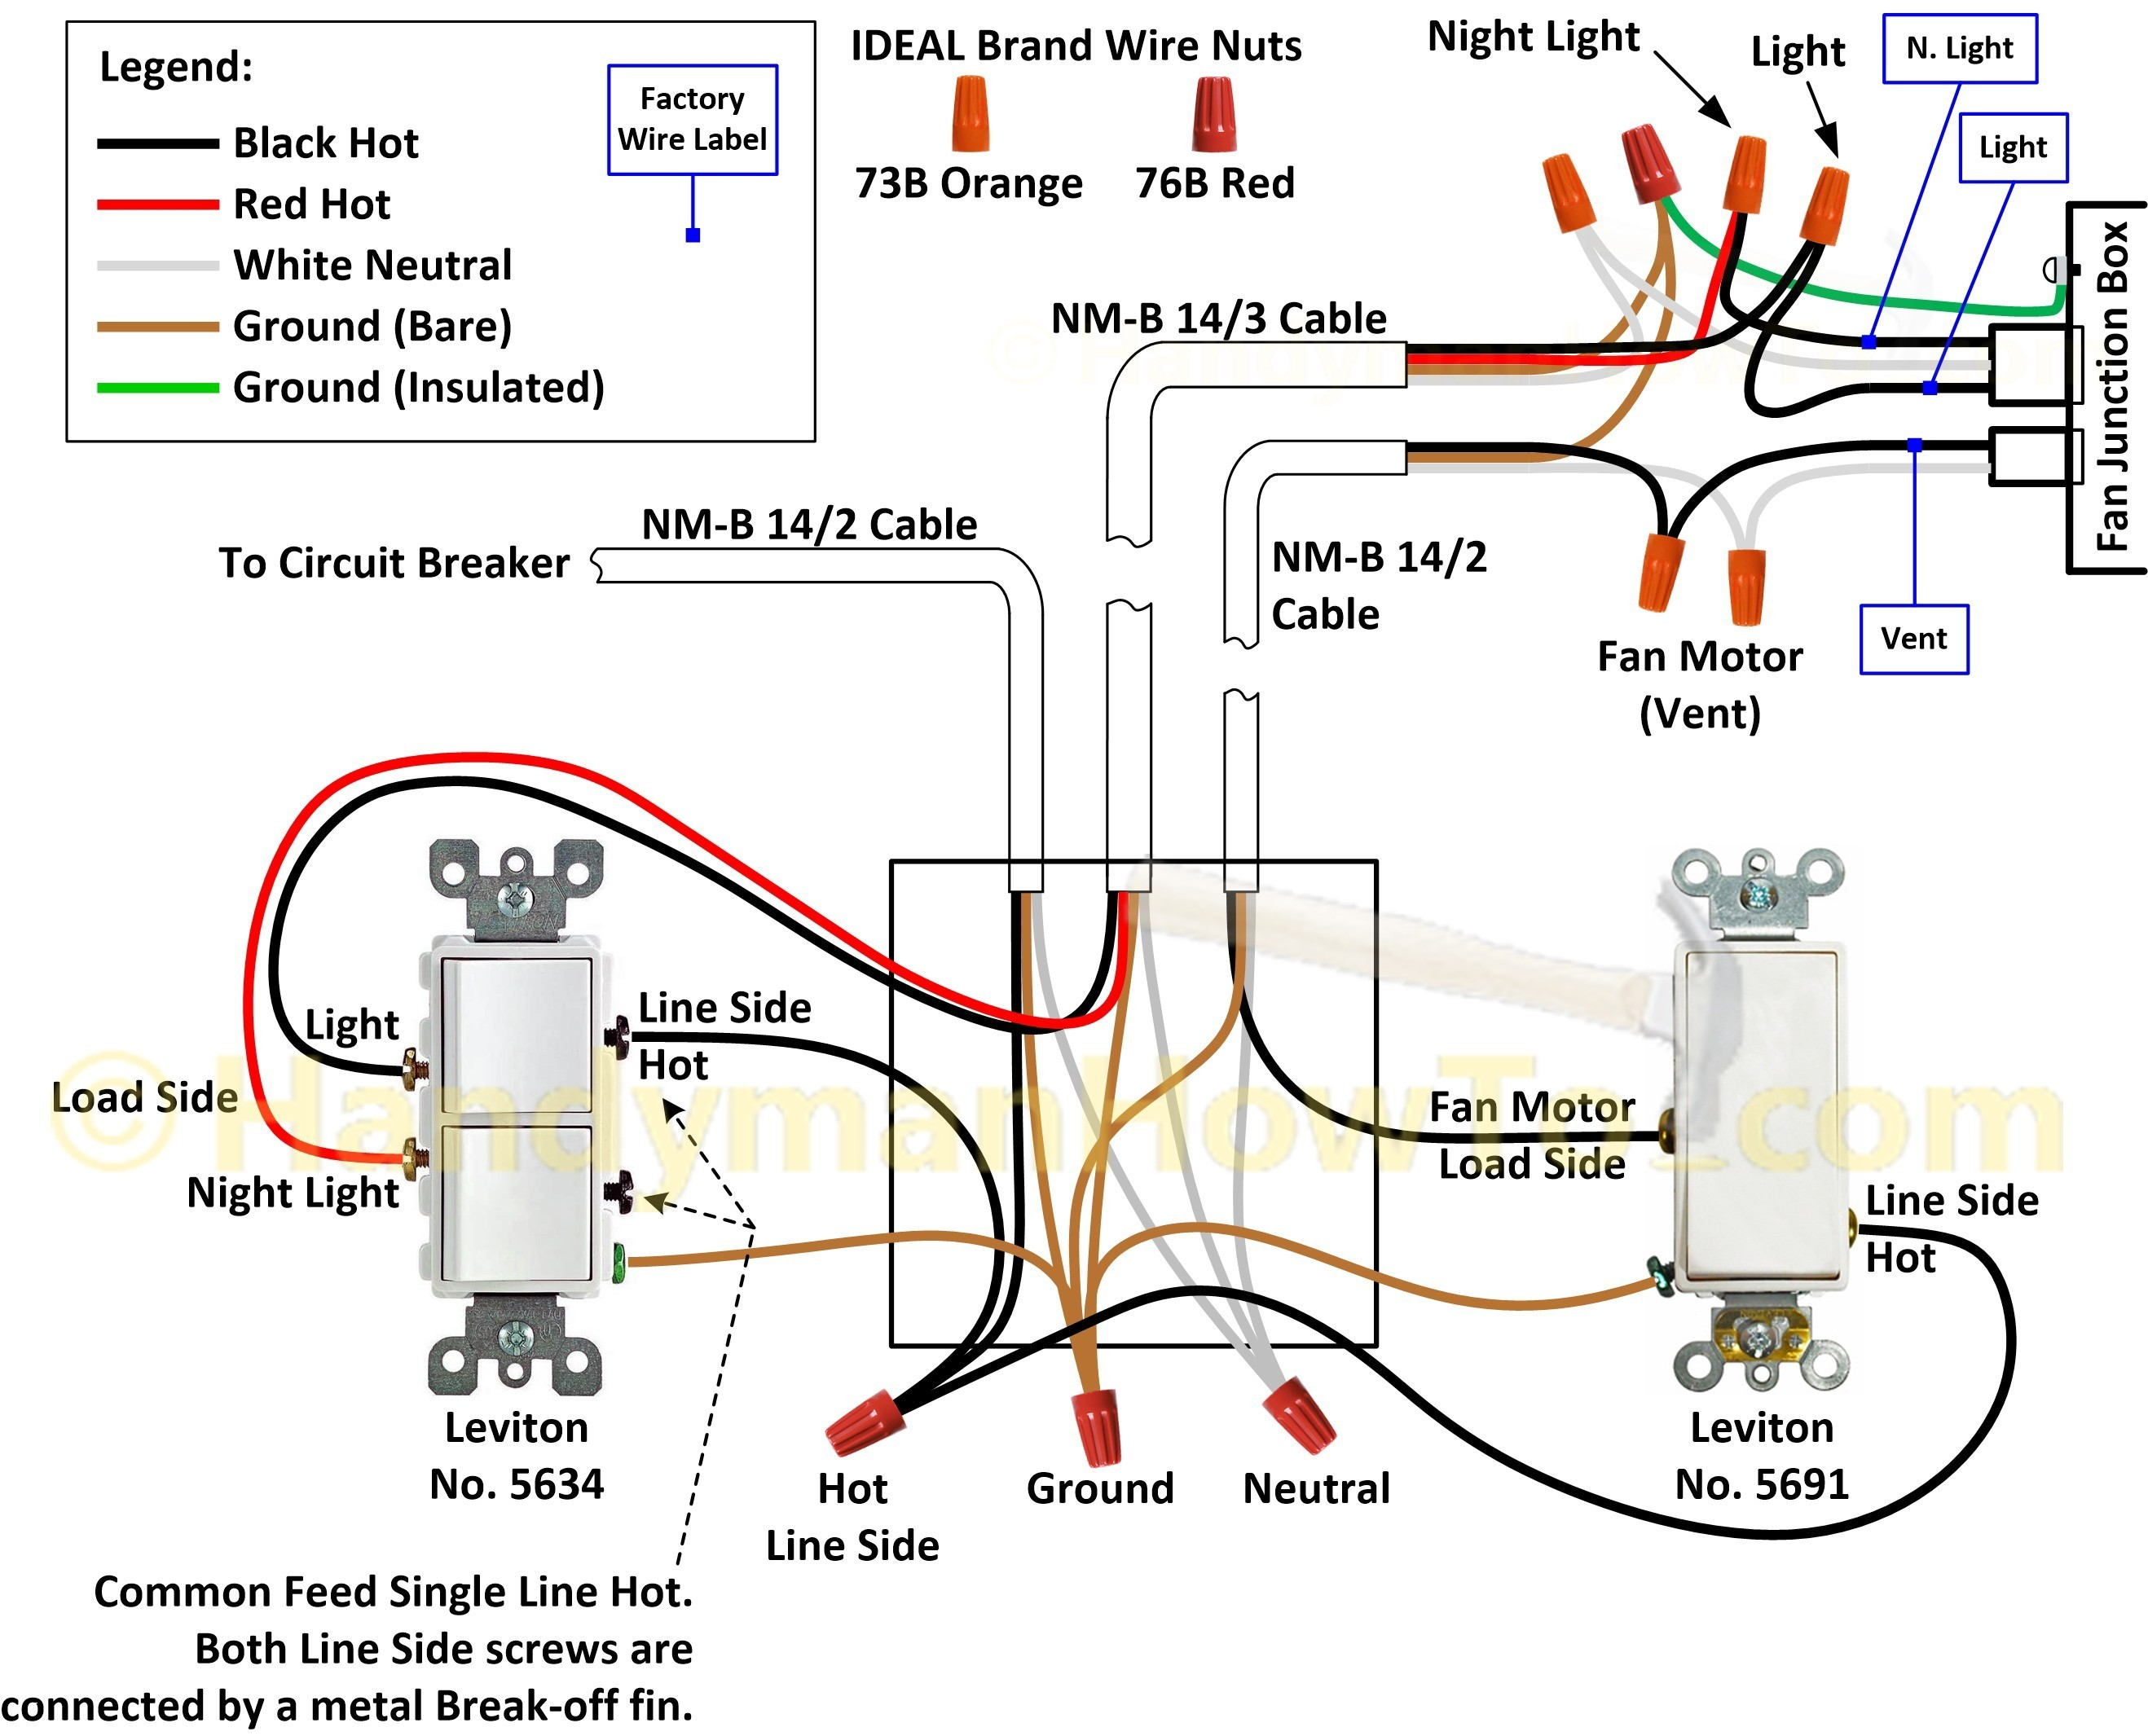 4 Way Switch Wiring Diagrams Inspirational How to Wire A Light with Two Switches Switch Diagram